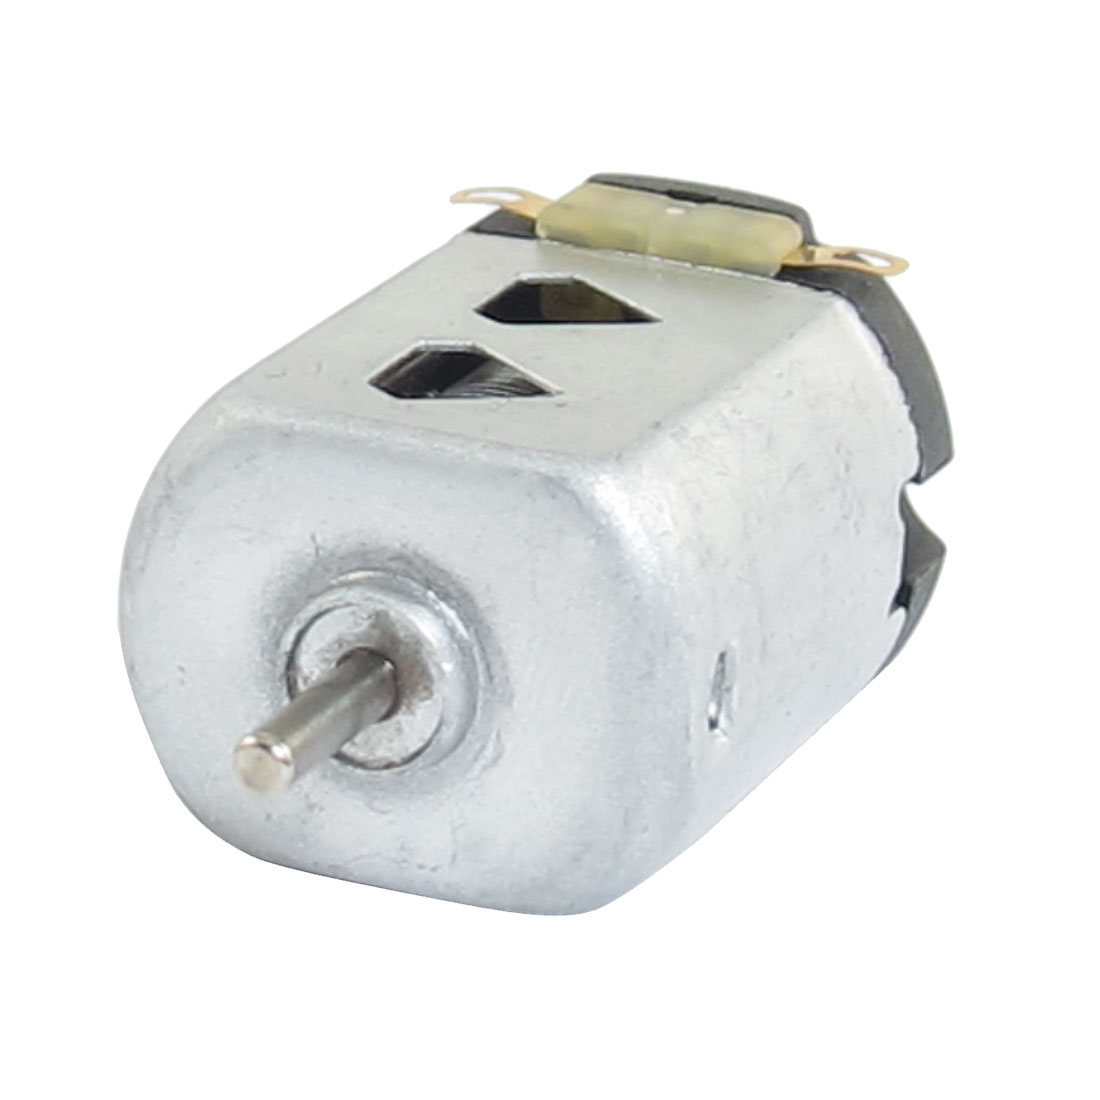 1.5V DC 9000RPM Silver Tone Flat Electric 130 Motor for Four-wheel Car